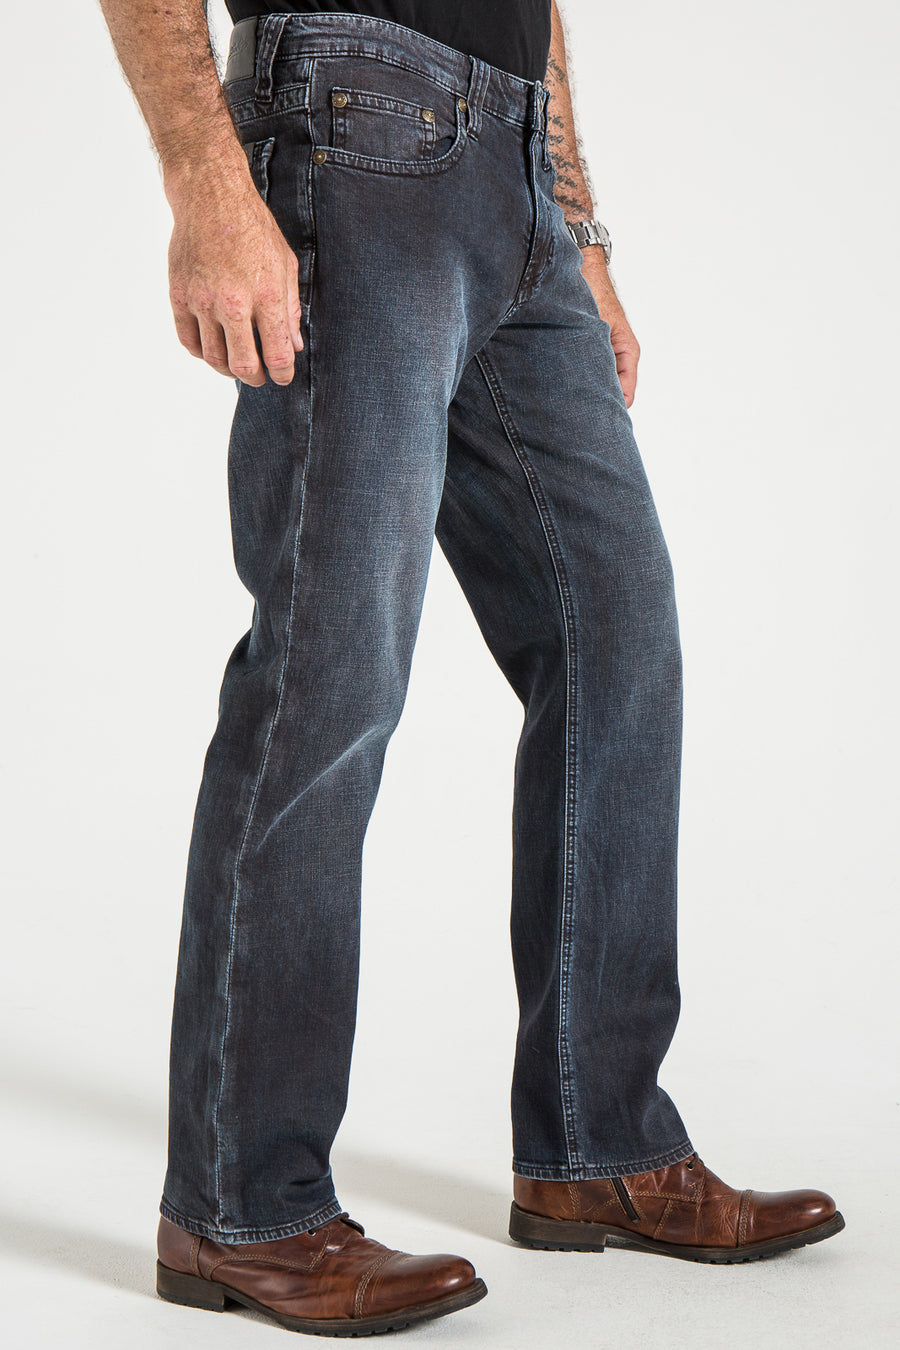 TEXAS STRAIGHT IN ATLANTIS DENIM